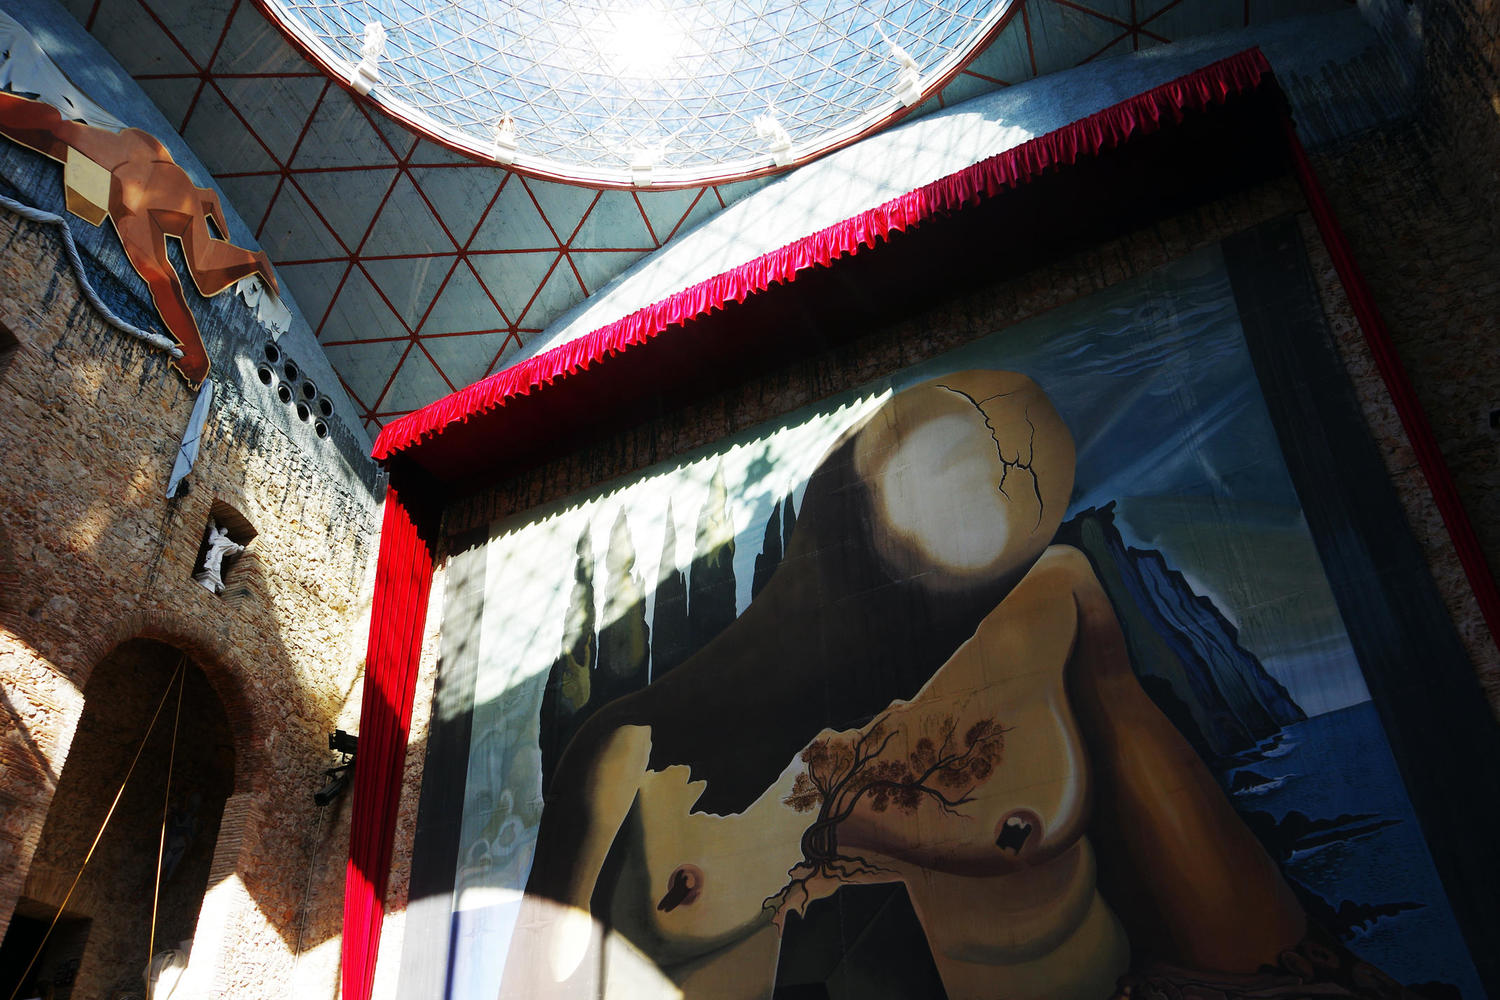 Inside the bonkers Dali museum at Figueres